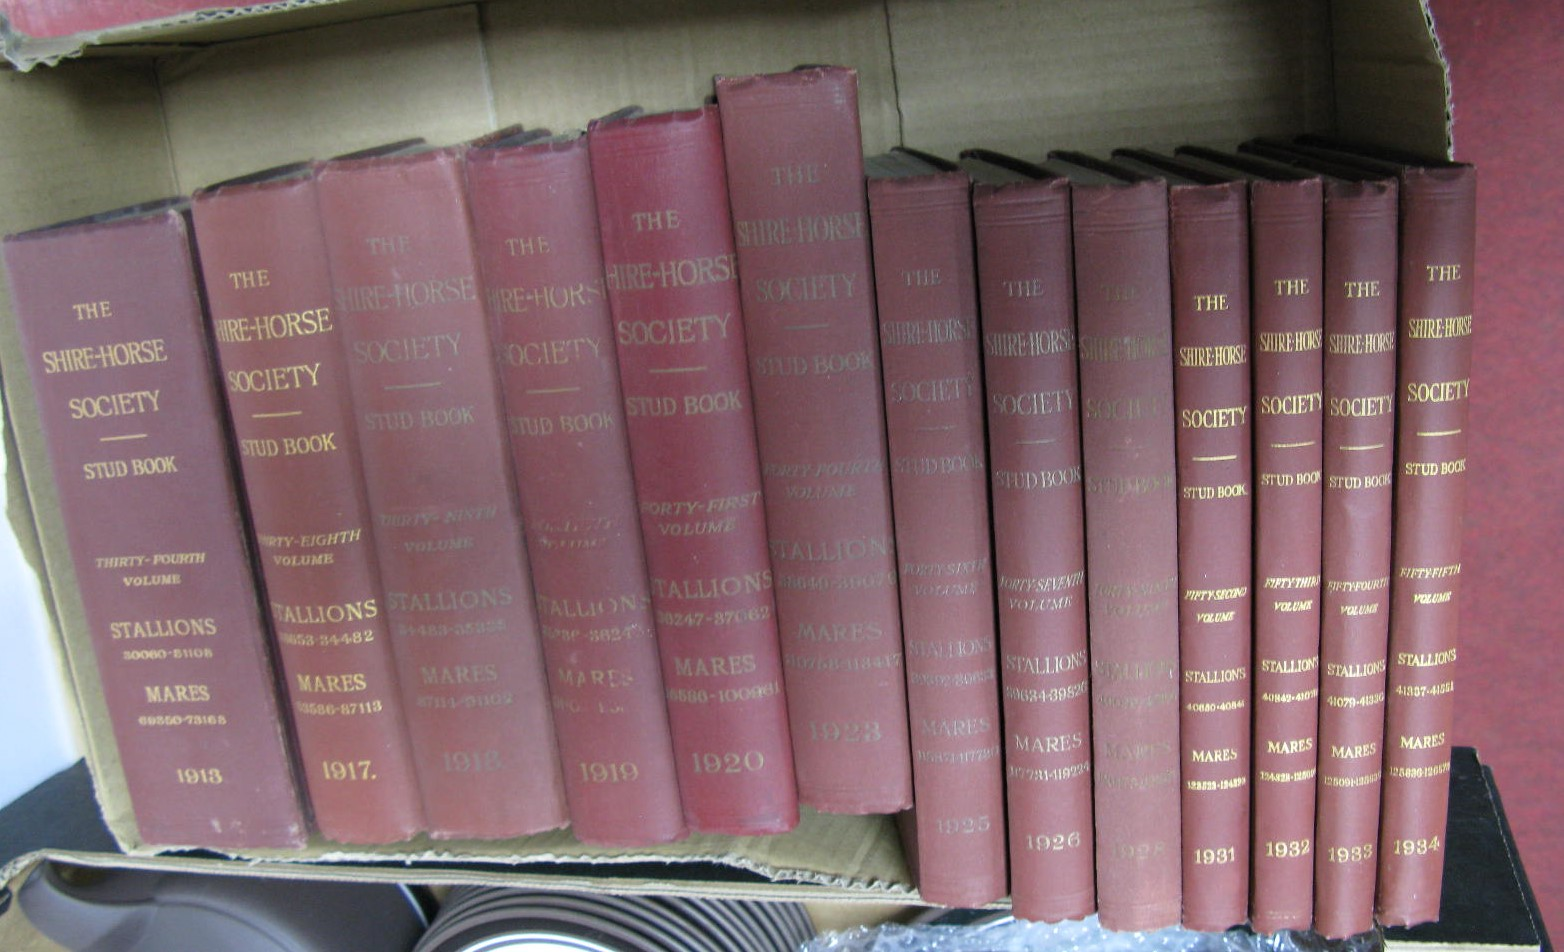 Lot 1021 - The Shire Horse Society Stud Book, 1913, 17, 18, 19, 20/ 23, 25, 26, 28, 31, 32, 33, 34. (13)